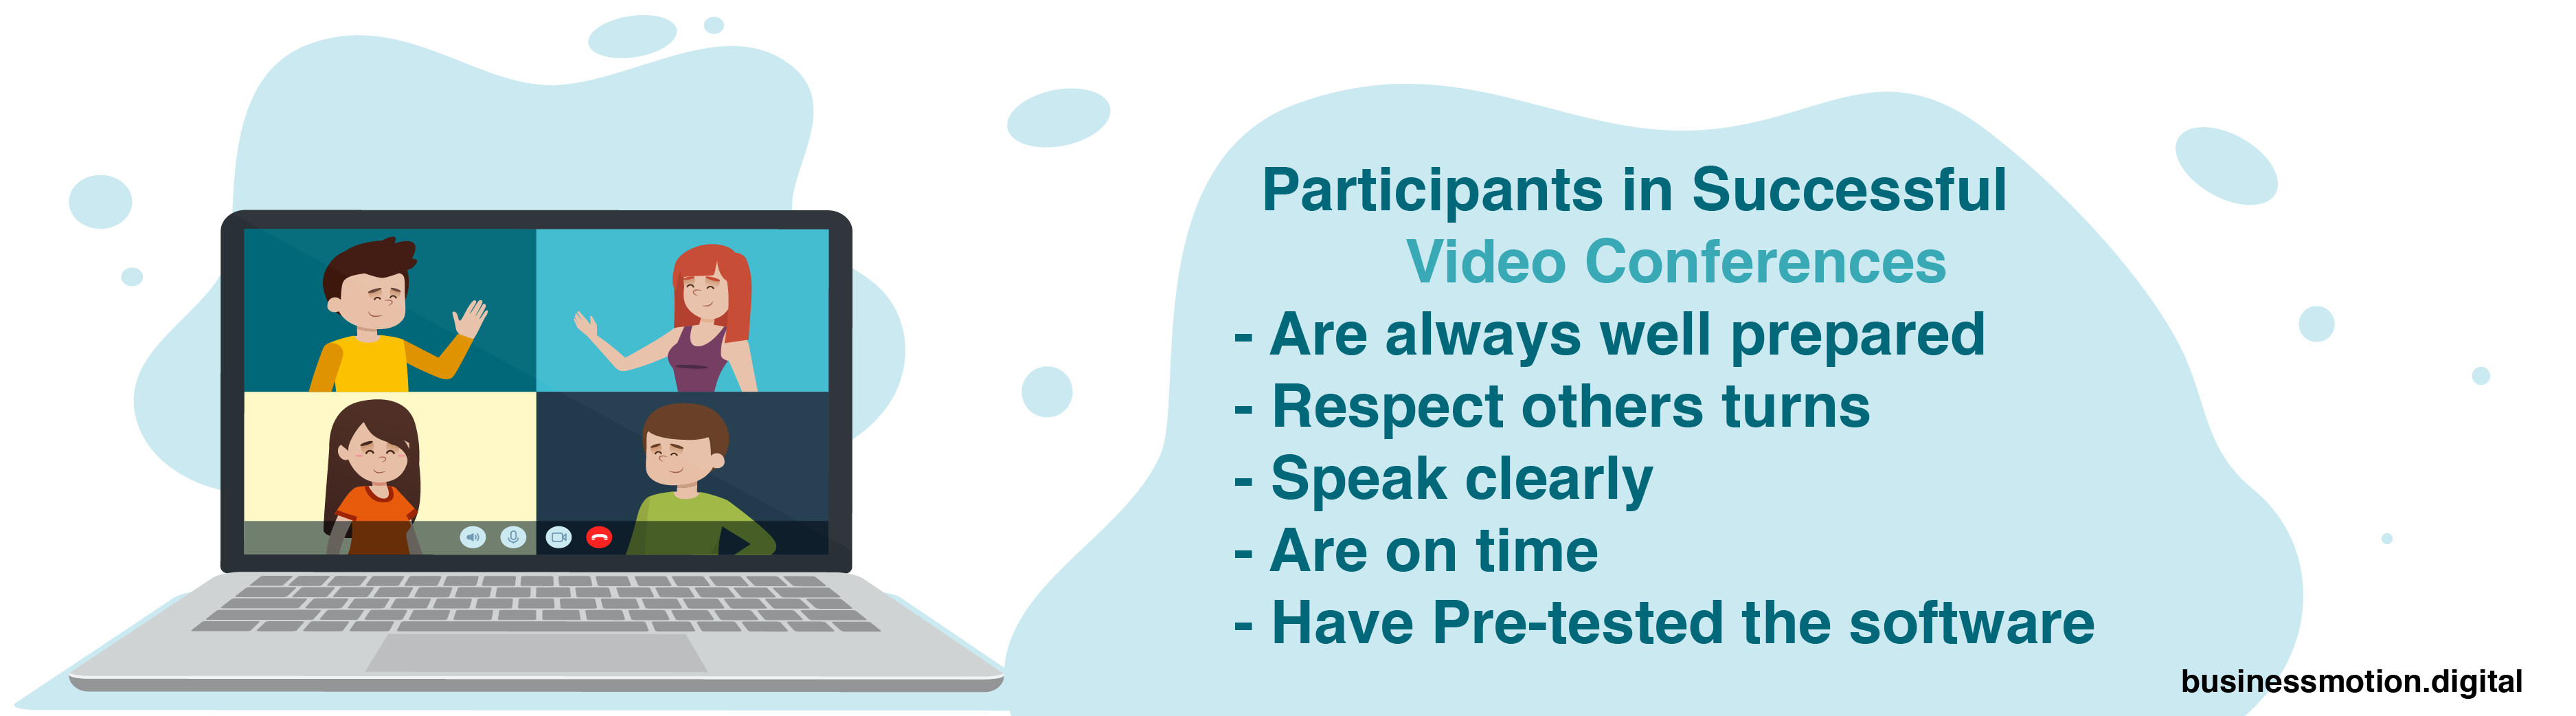 Tips to Having A Proper Video Conference